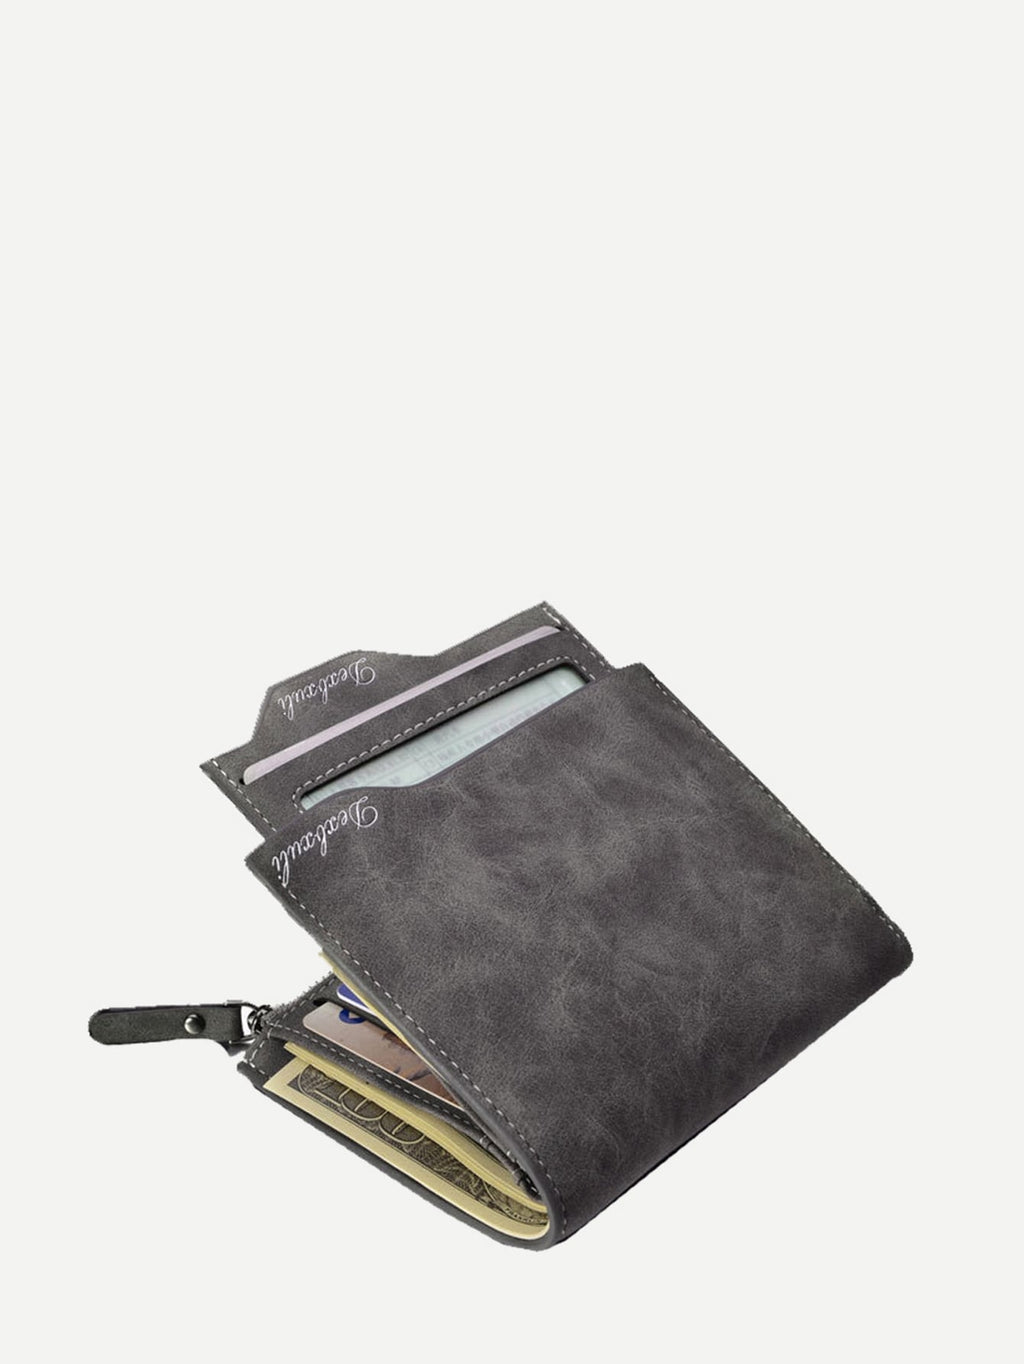 Men's Wallets - Fold Over Wallet With Coin Pocket